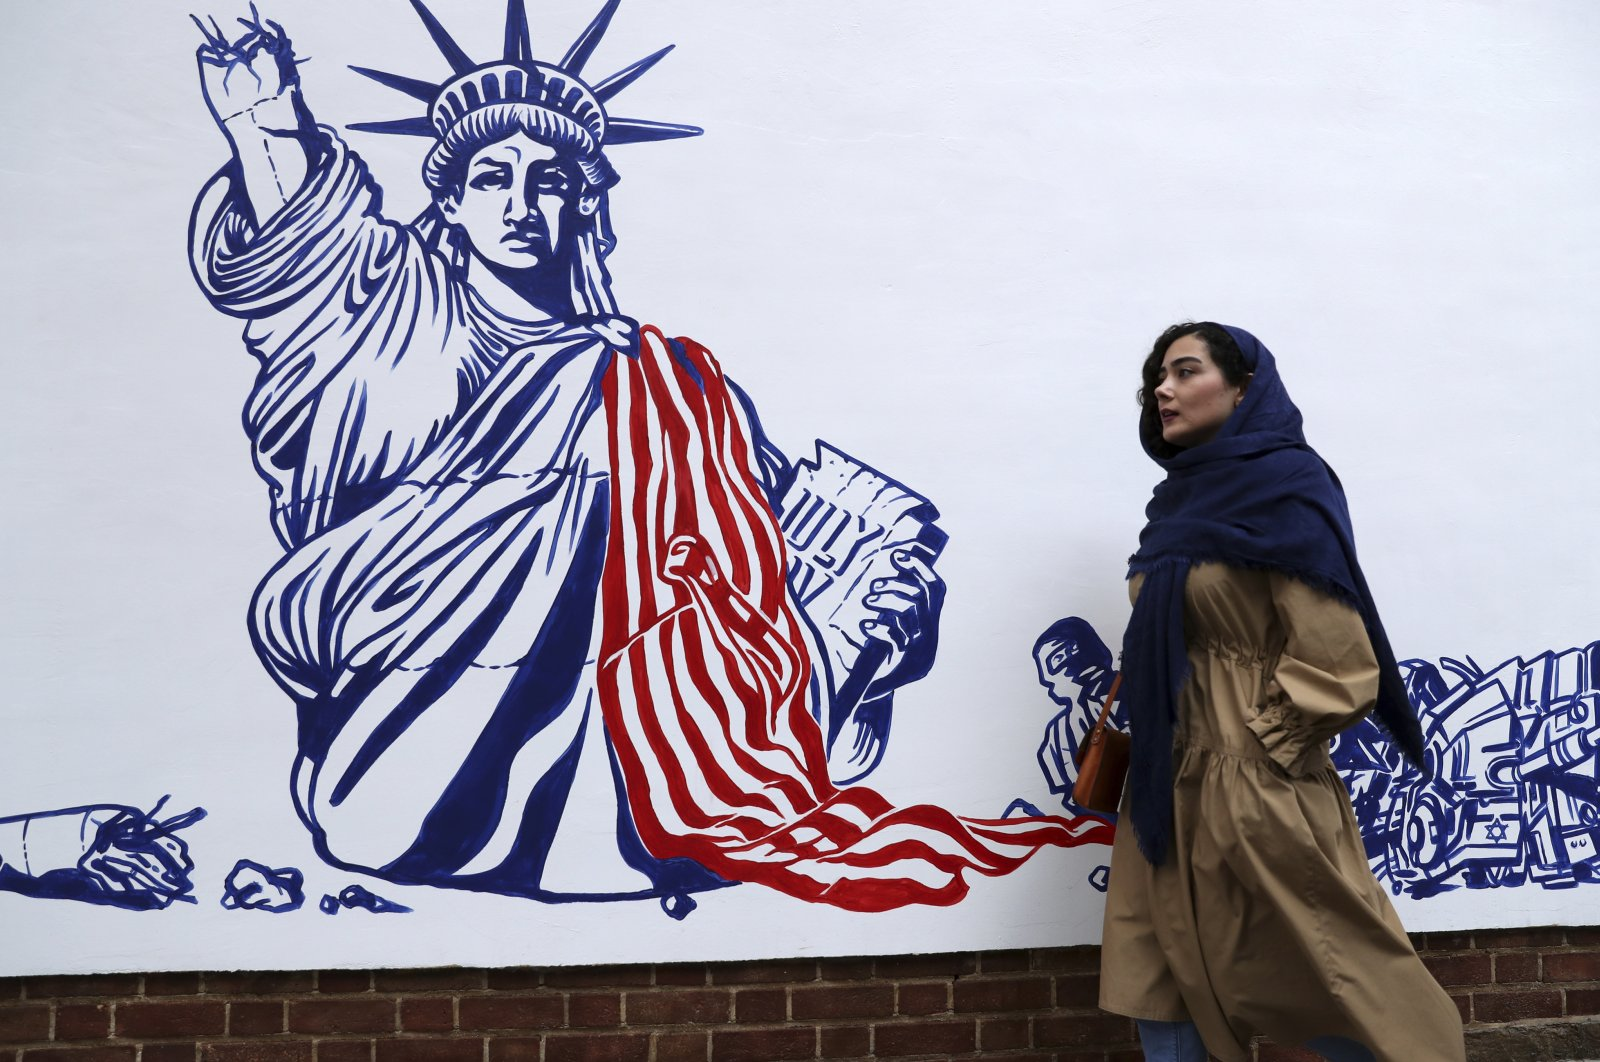 A woman walks past a satirical drawing of the Statue of Liberty on the walls of the former U.S. Embassy unveiled in a ceremony in Tehran, Iran, Nov. 2, 2019. (AP Photo)